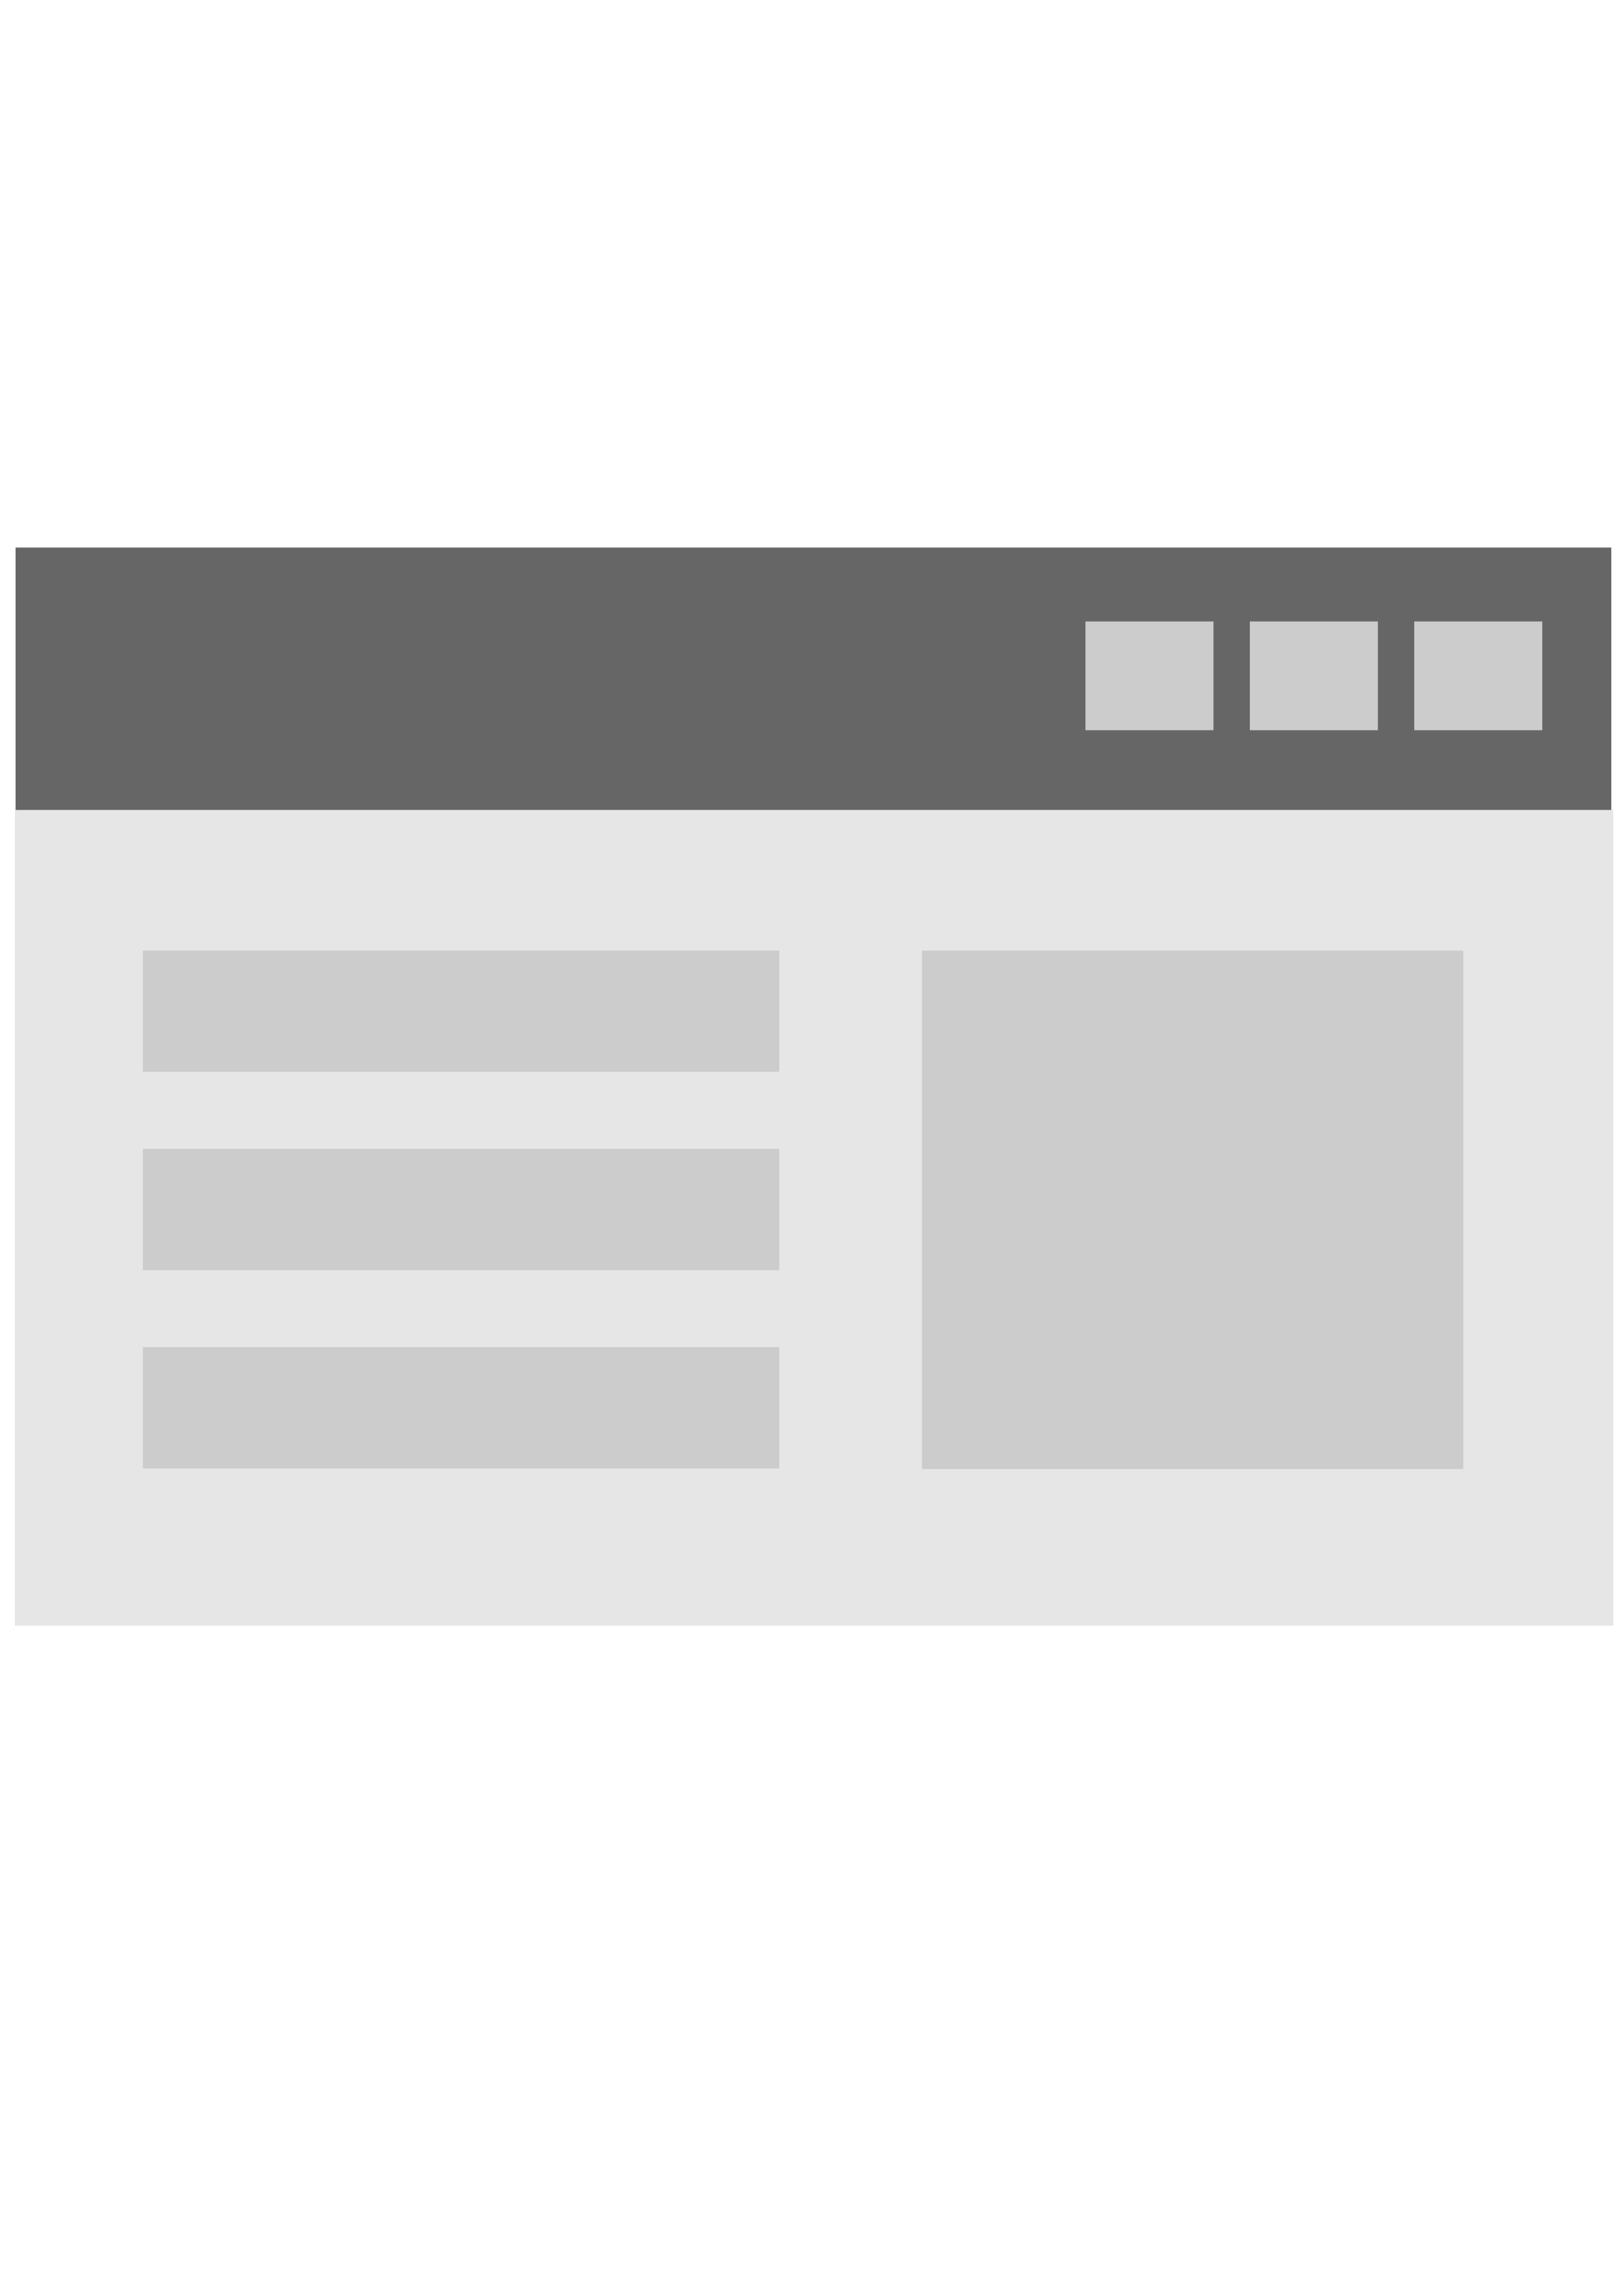 Simple system window by hackdorte